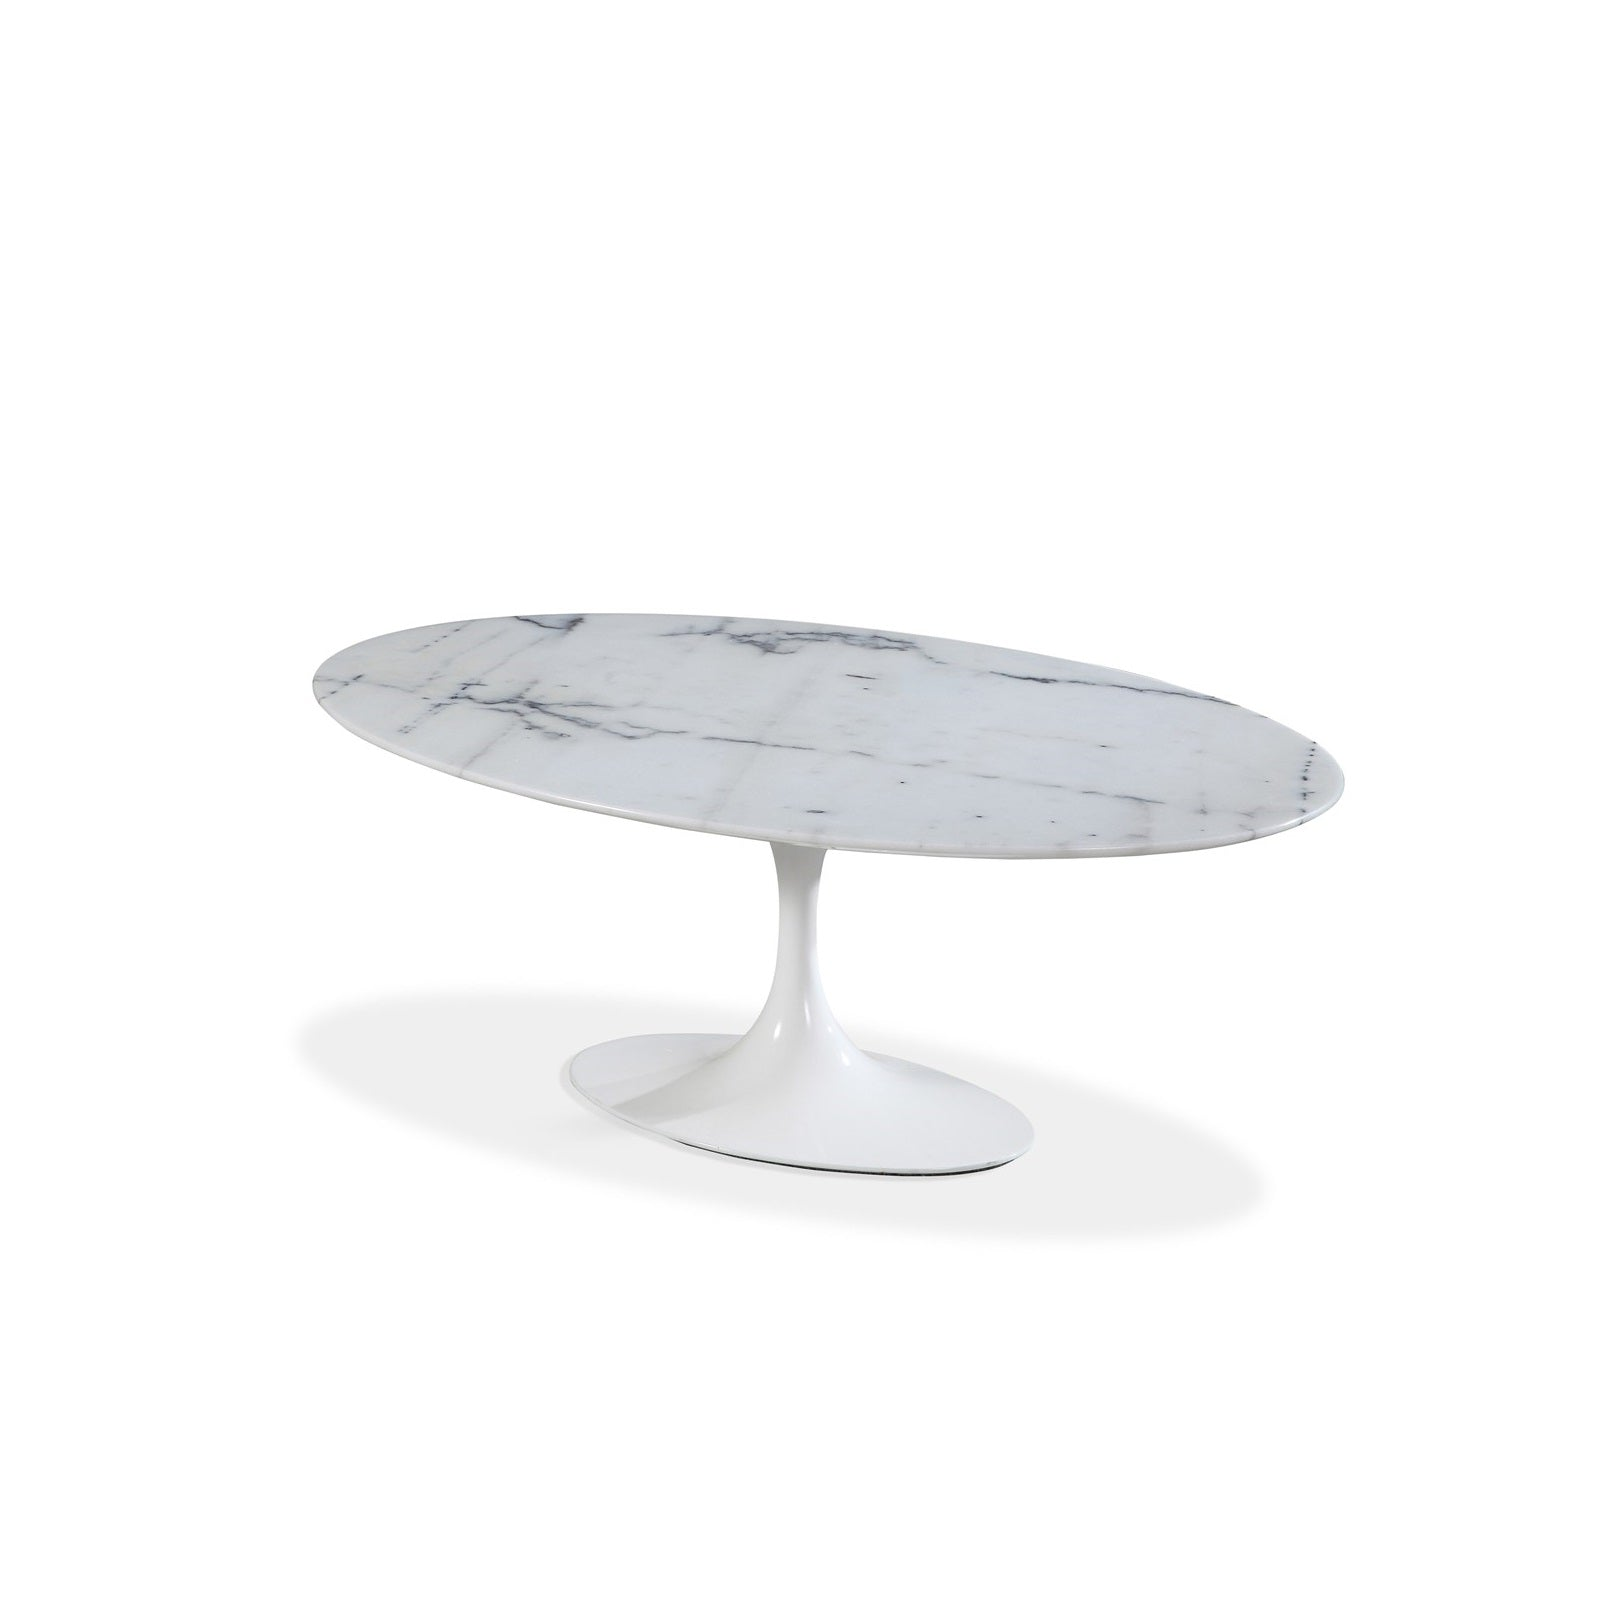 "Oval Marble White dining 78"" $"